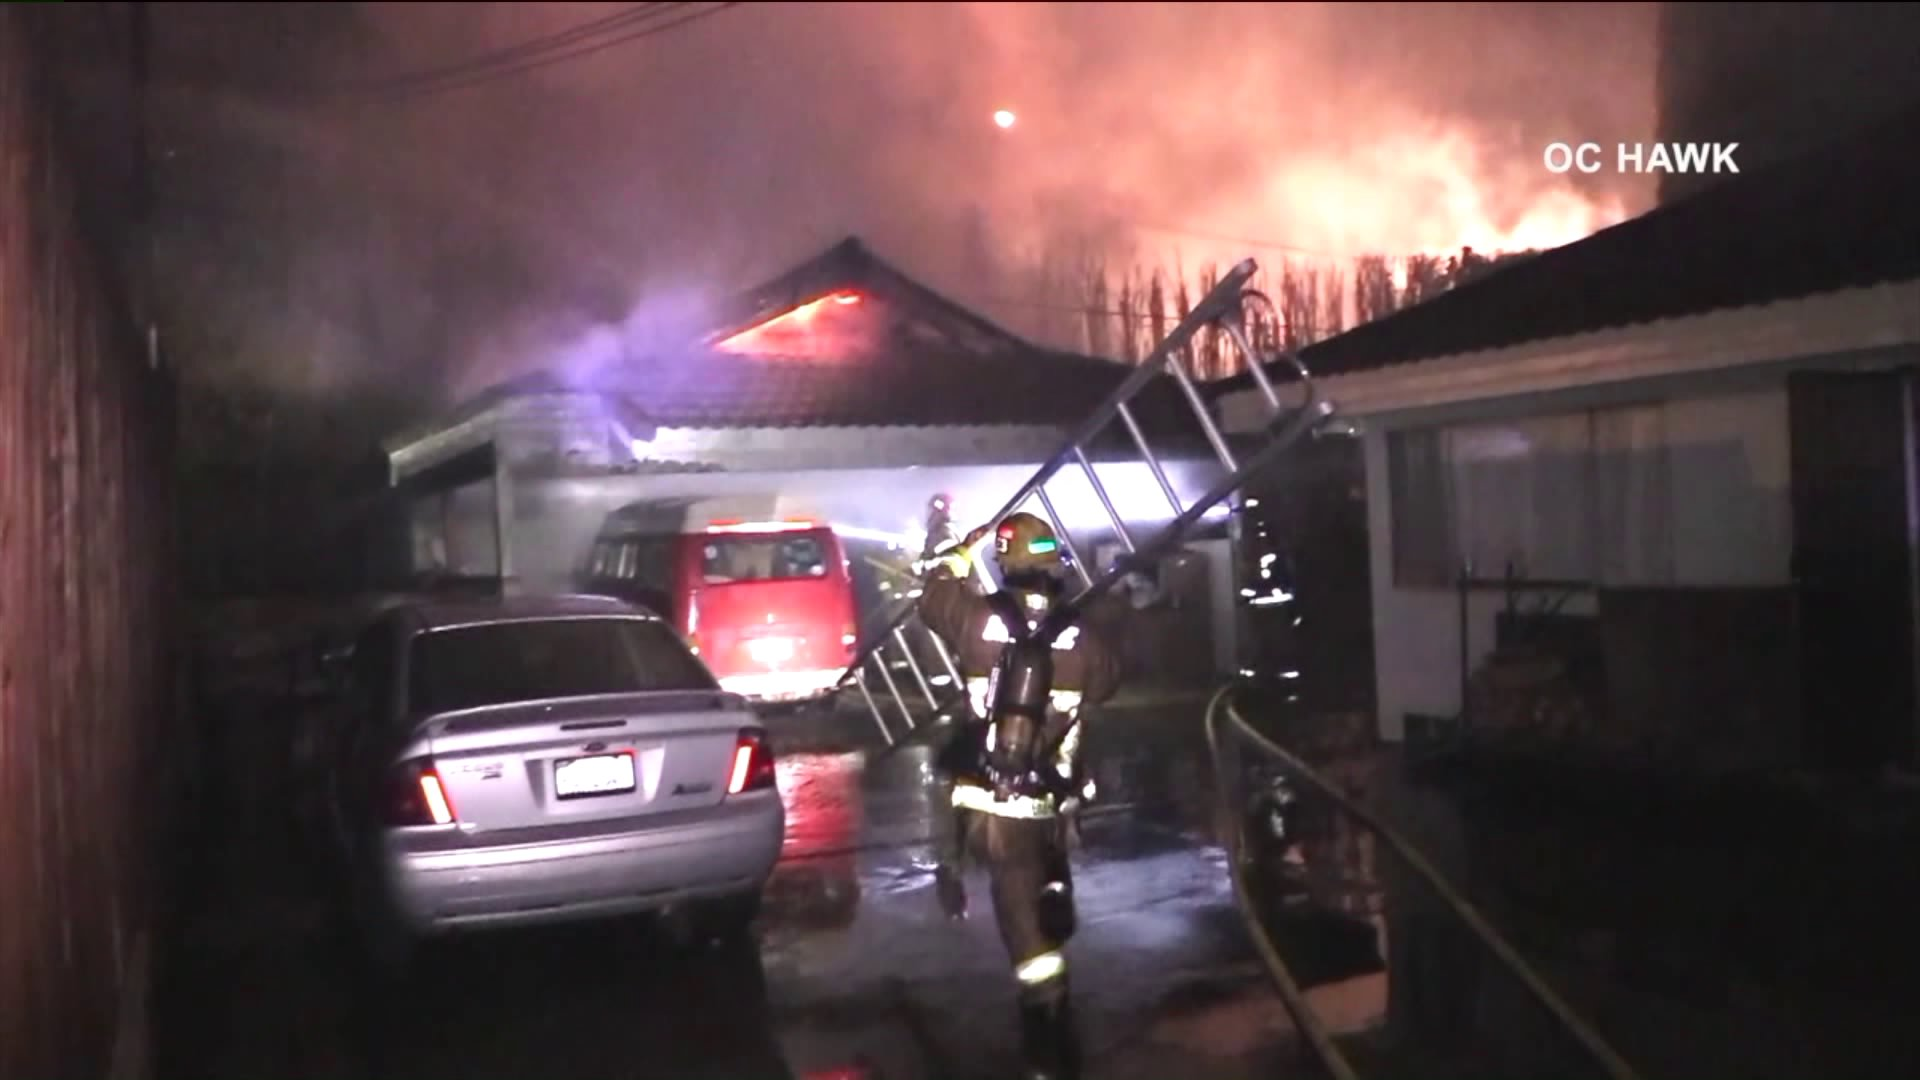 Cypress tree fire burns one home, then another hours later in Brea on March 6, 2018.